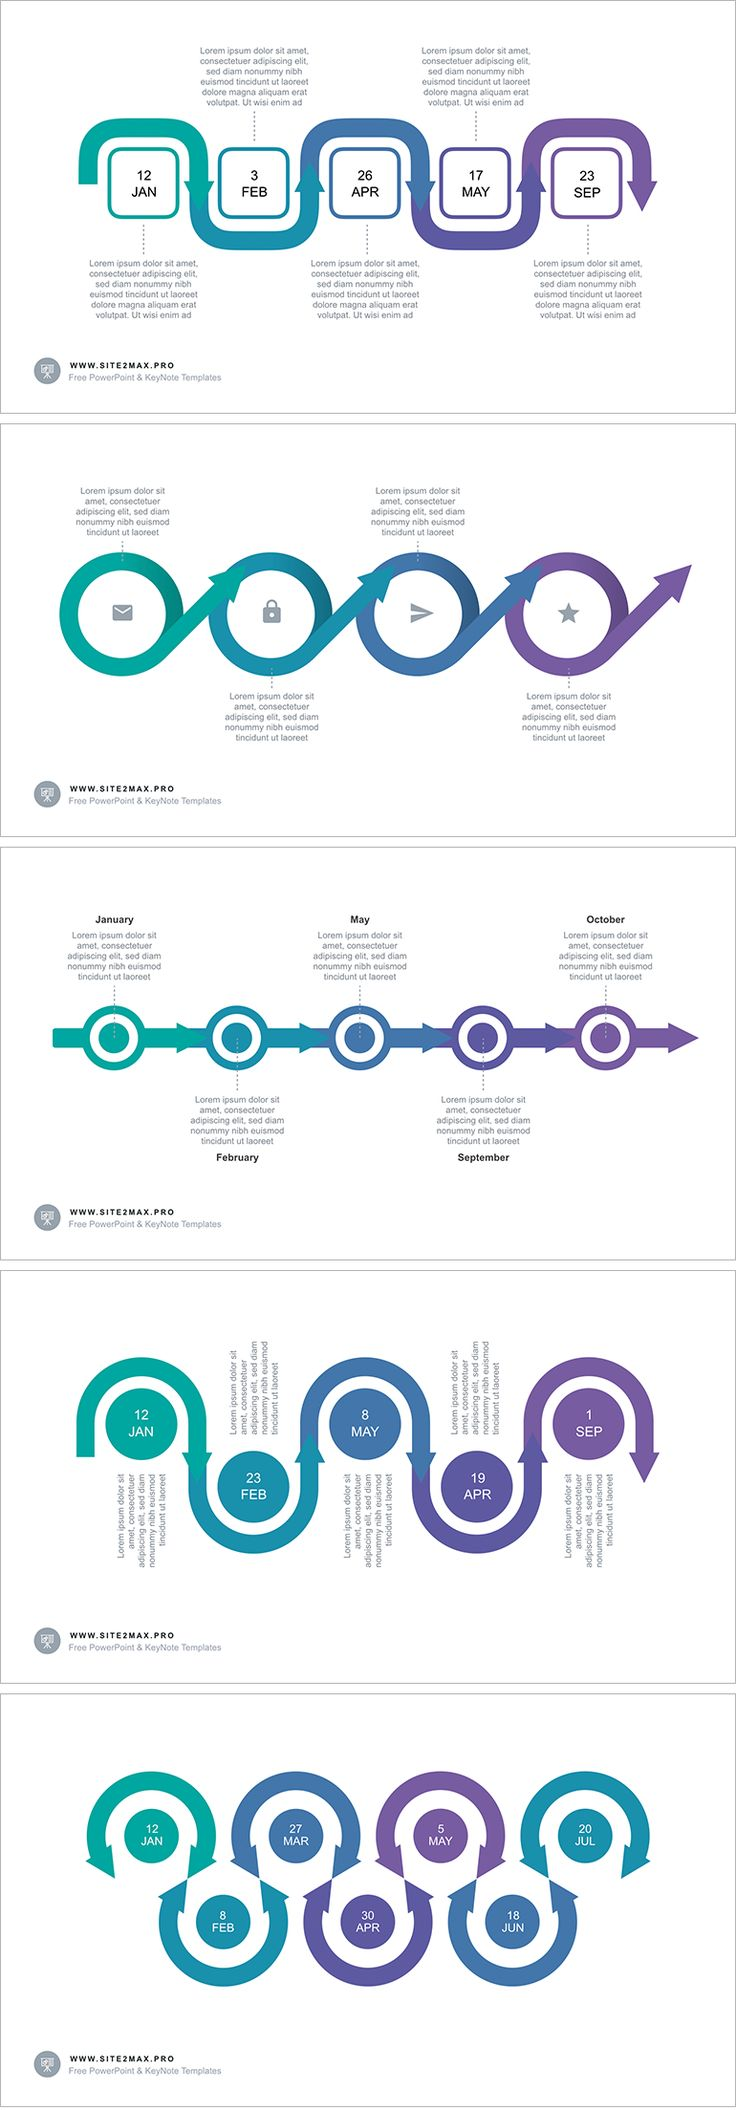 Download: https://hislide.io/product/timeline-arrow-ppt-type-2/ Timeline Arrow free PowerPoint template #timeline #powerpoint #ppt #pptx #step #violet #infographic #marketing